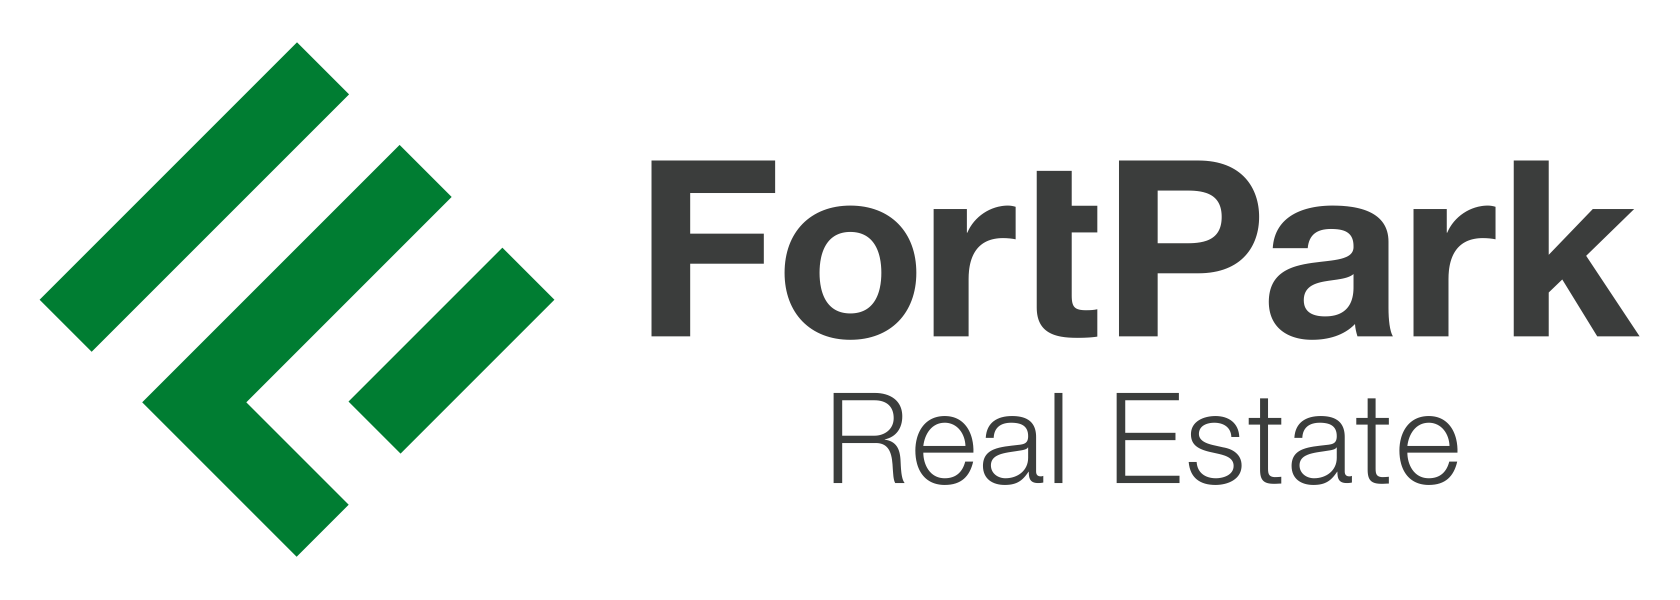 Fort Park Real Estate